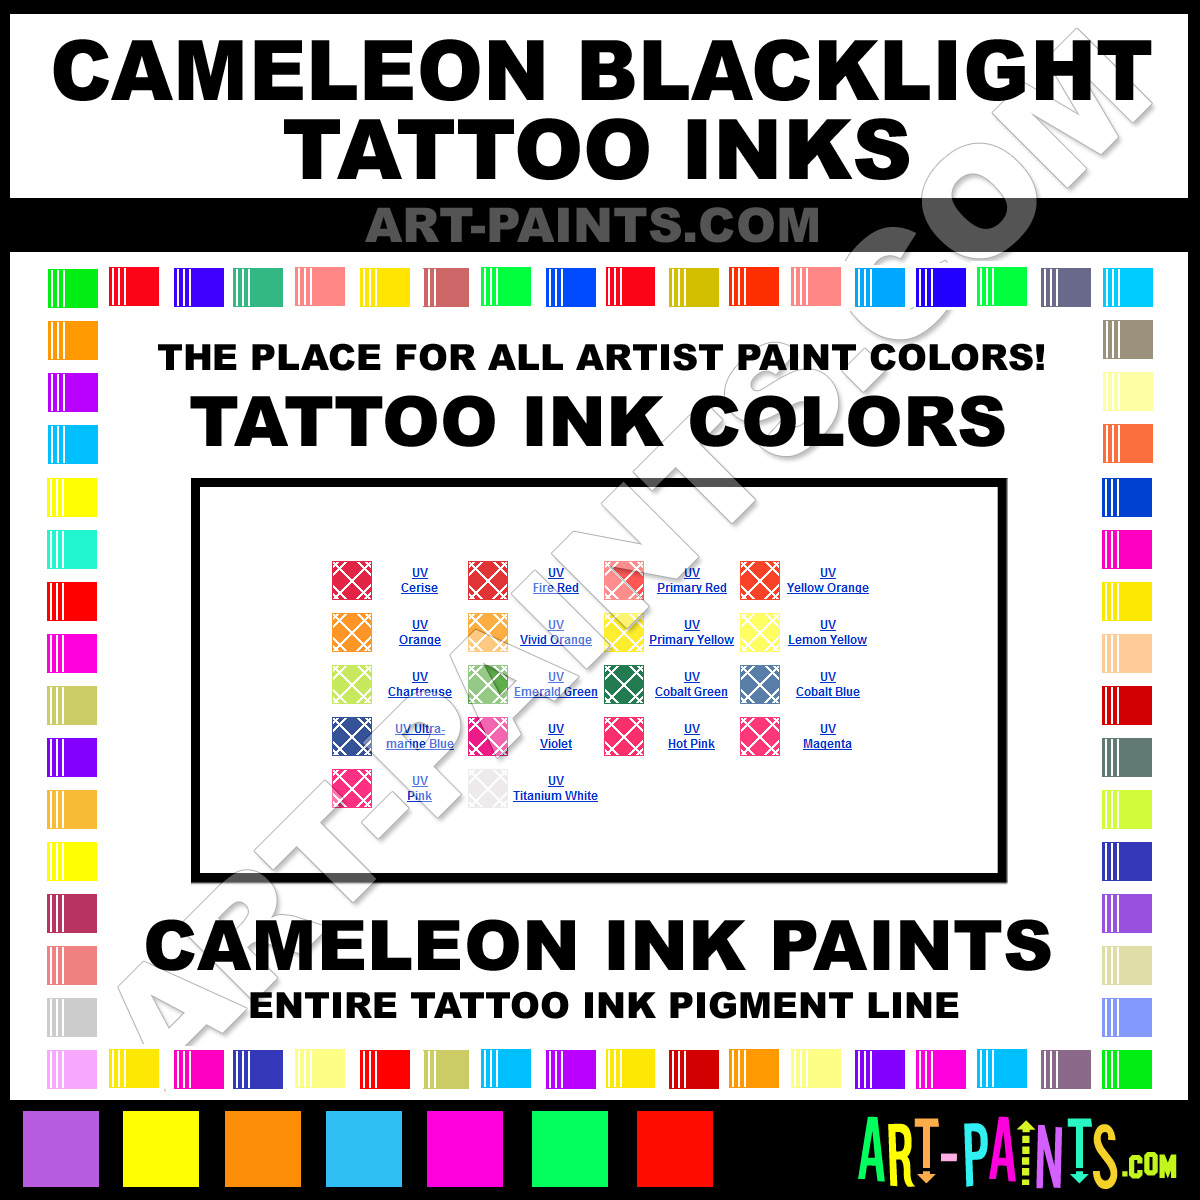 Cameleon Blacklight Tattoo Ink